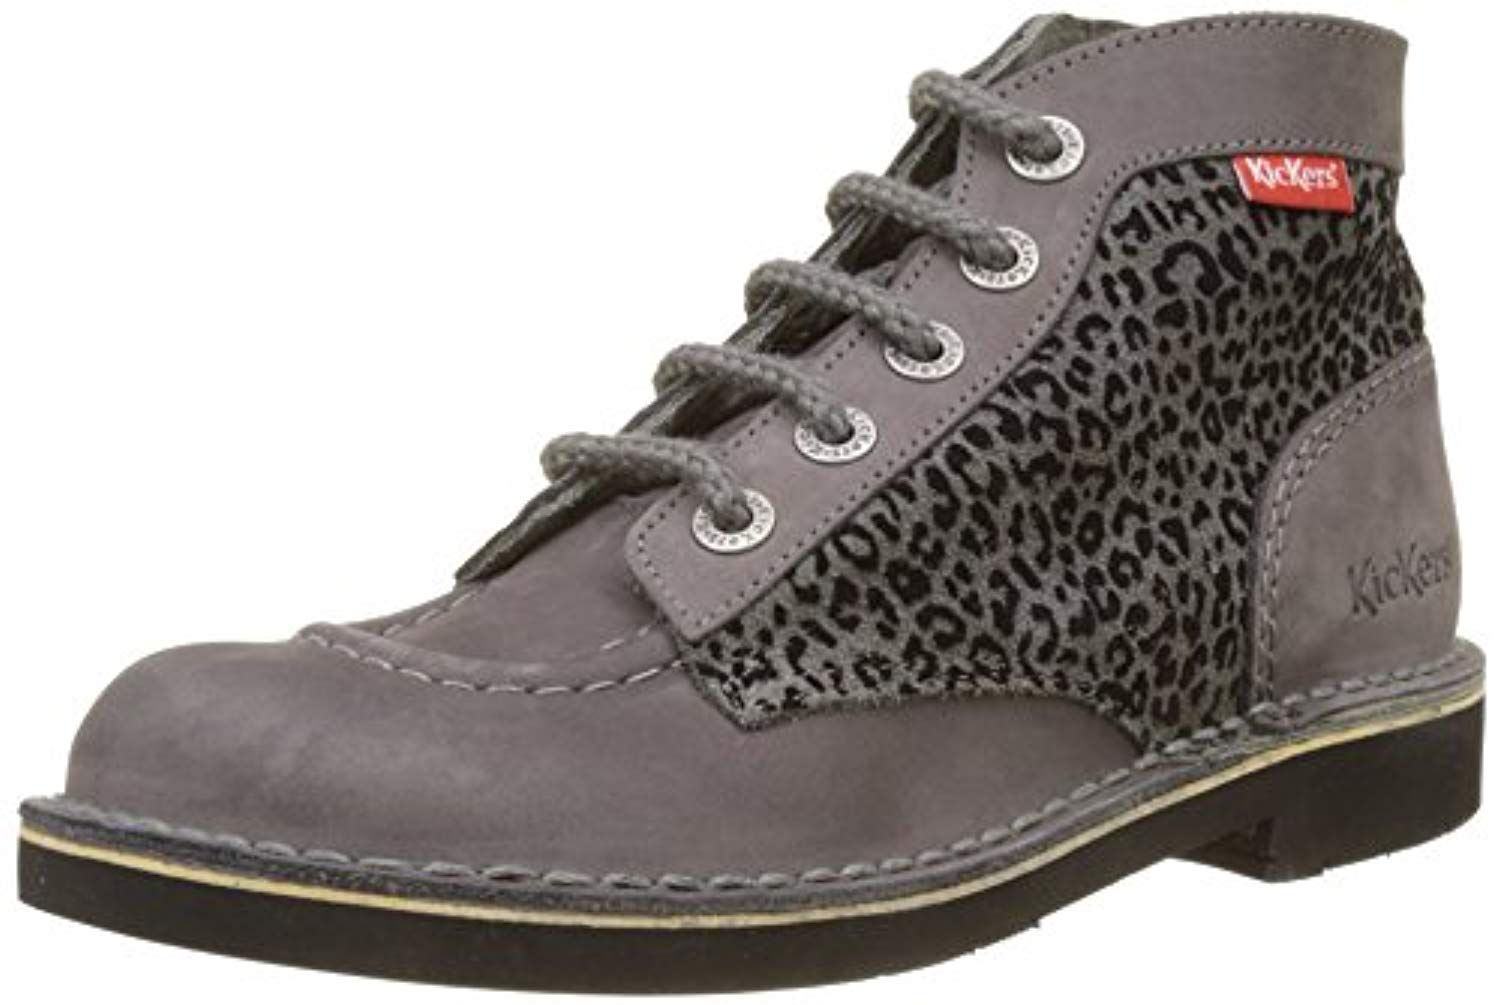 Kickers 2018Chaussures Classiques ColBottines Fille MSpULzVjqG